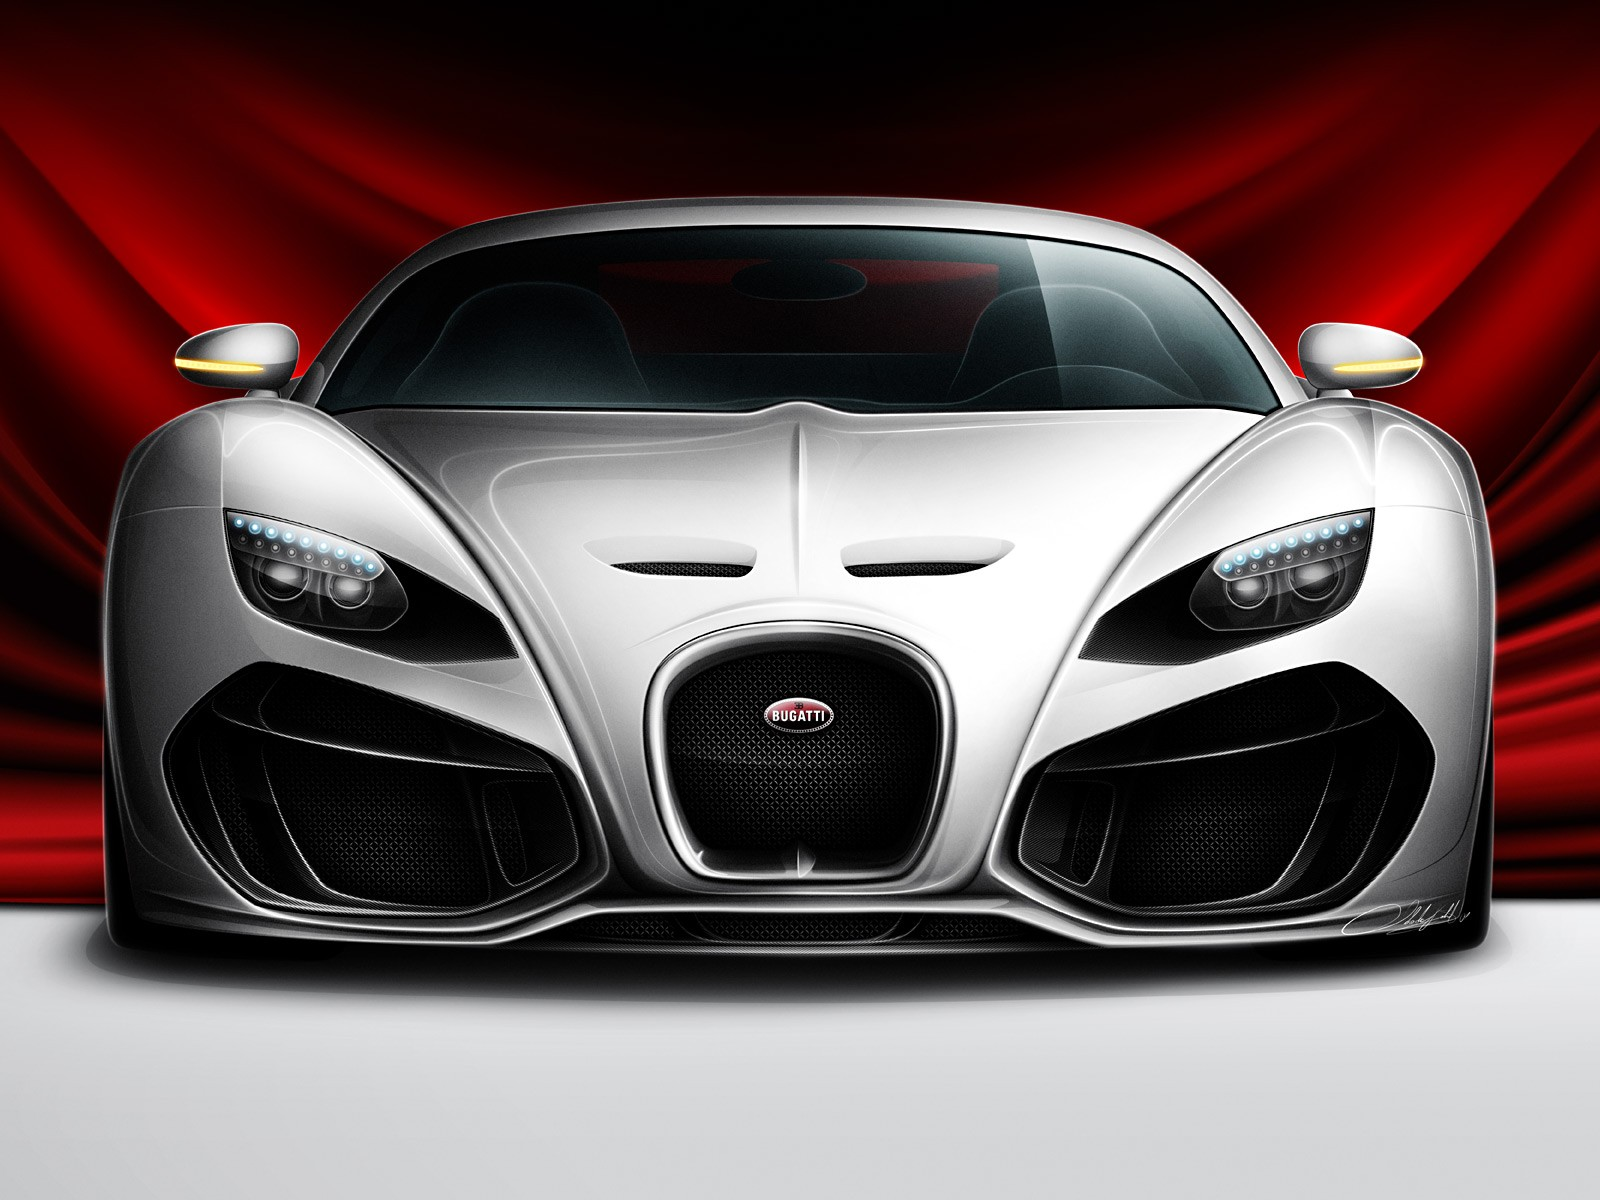 Free Cars HD Wallpapers: Bugatti Venom Concept Car HD Wall